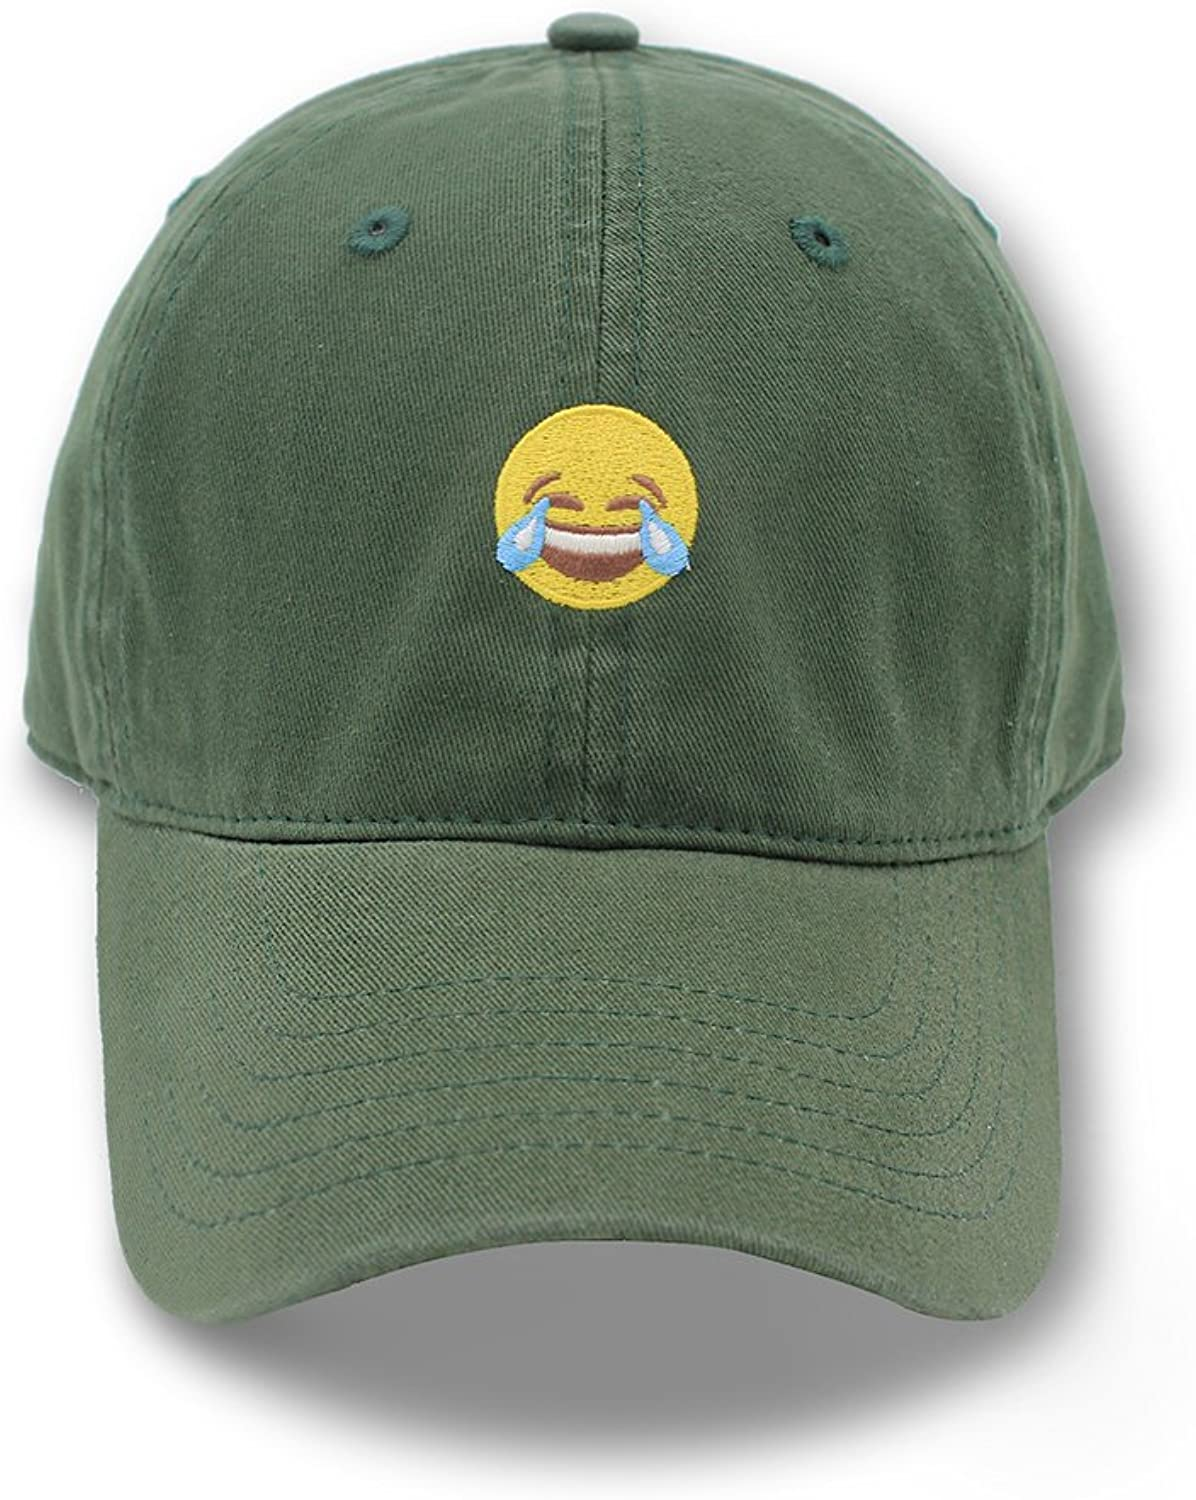 Hatter USA Embroidered Crying Laughing Emoji Unstructured Unisex Dad Hat